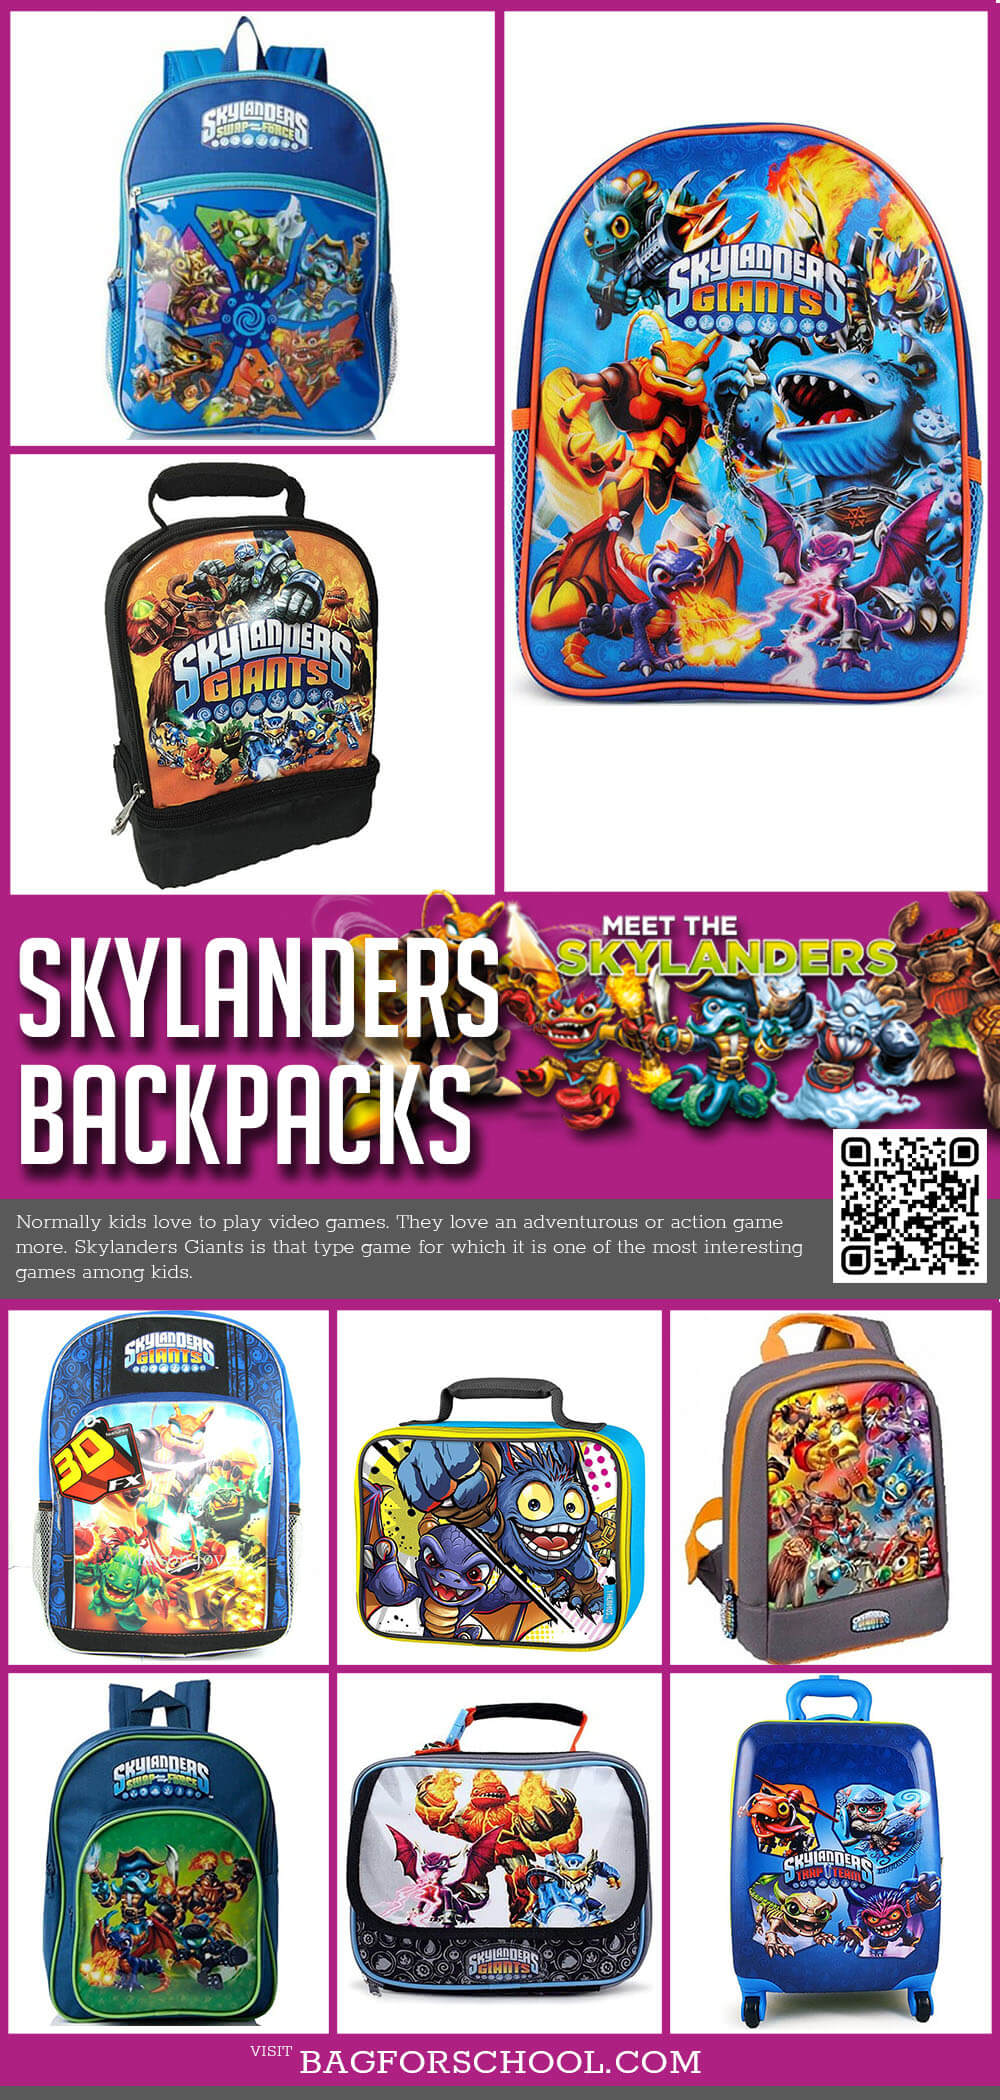 Skylanders Giants Backpacks